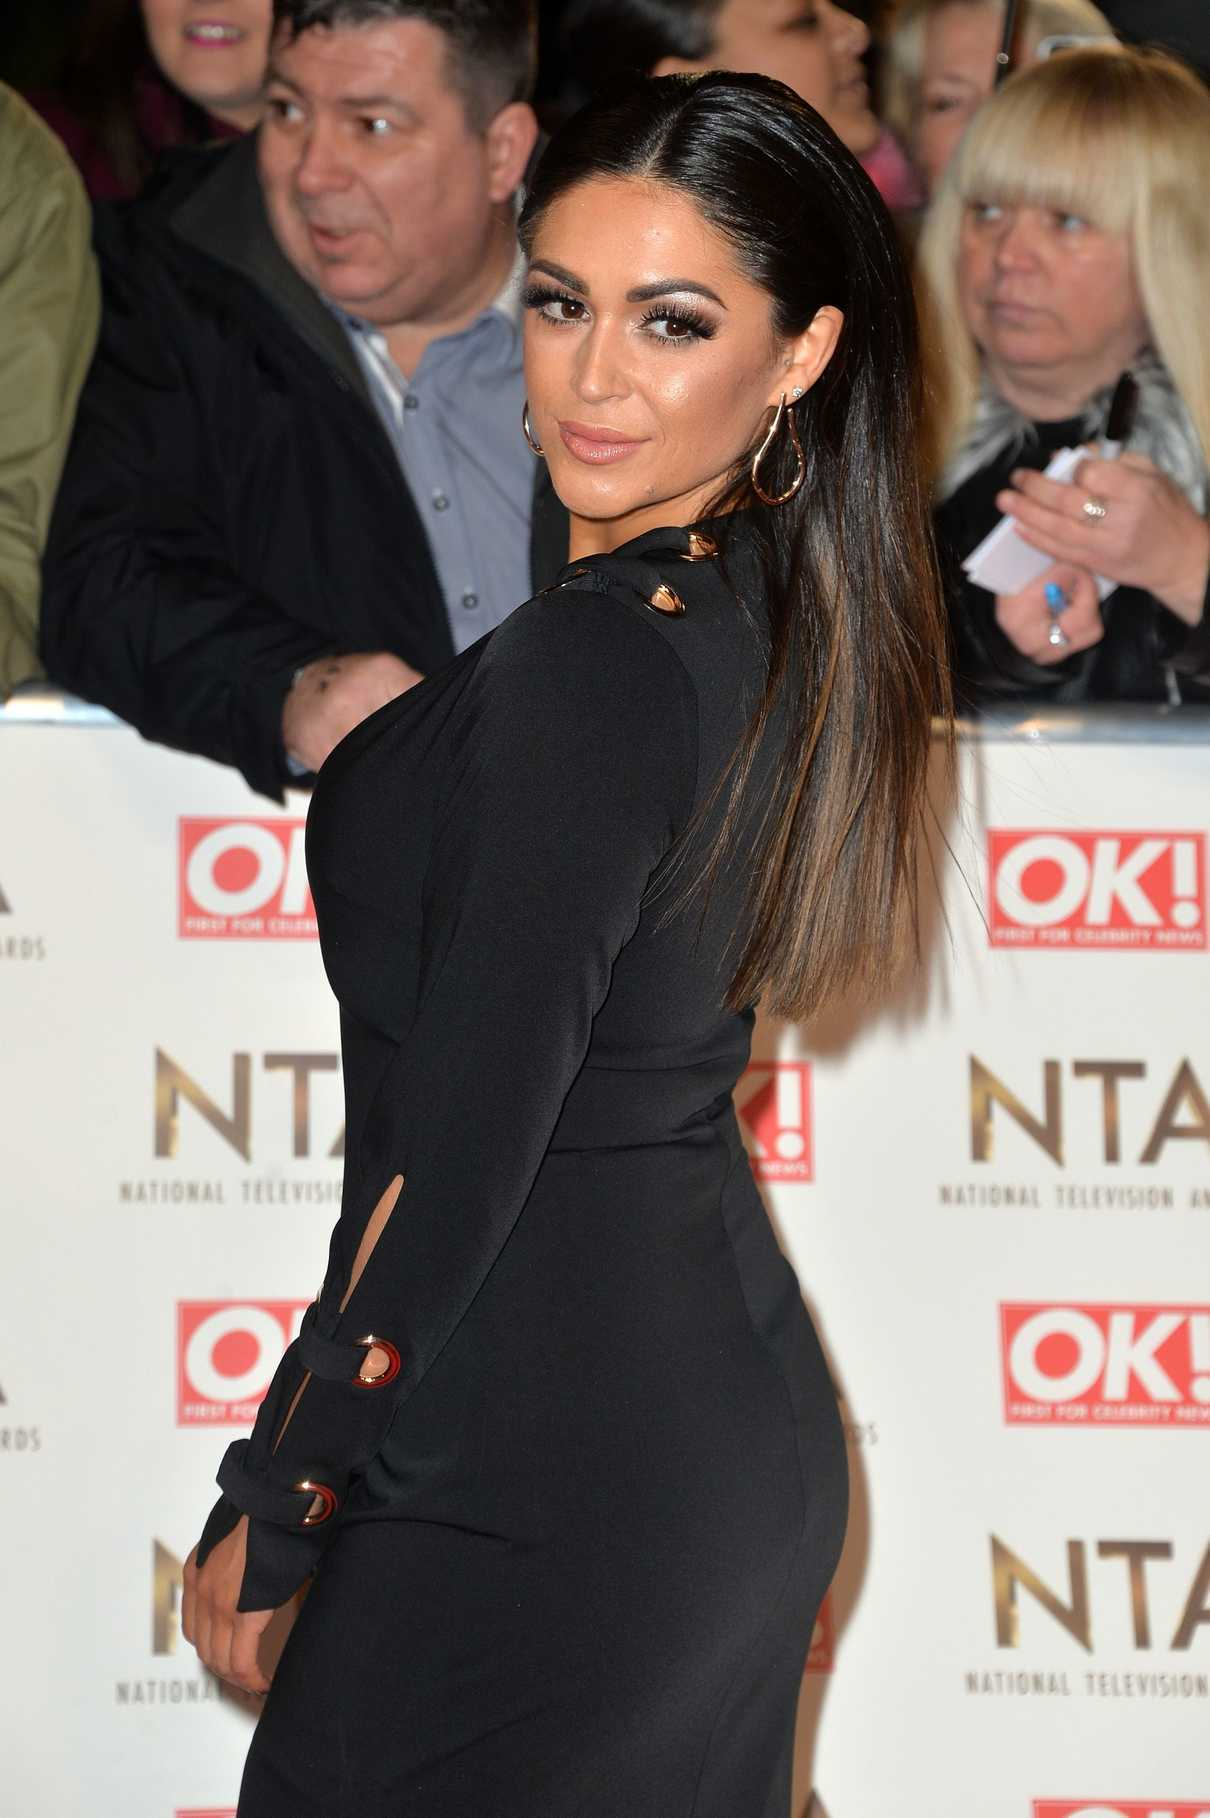 Casey Batchelor at the National Television Awards in London 01/25/2017-4